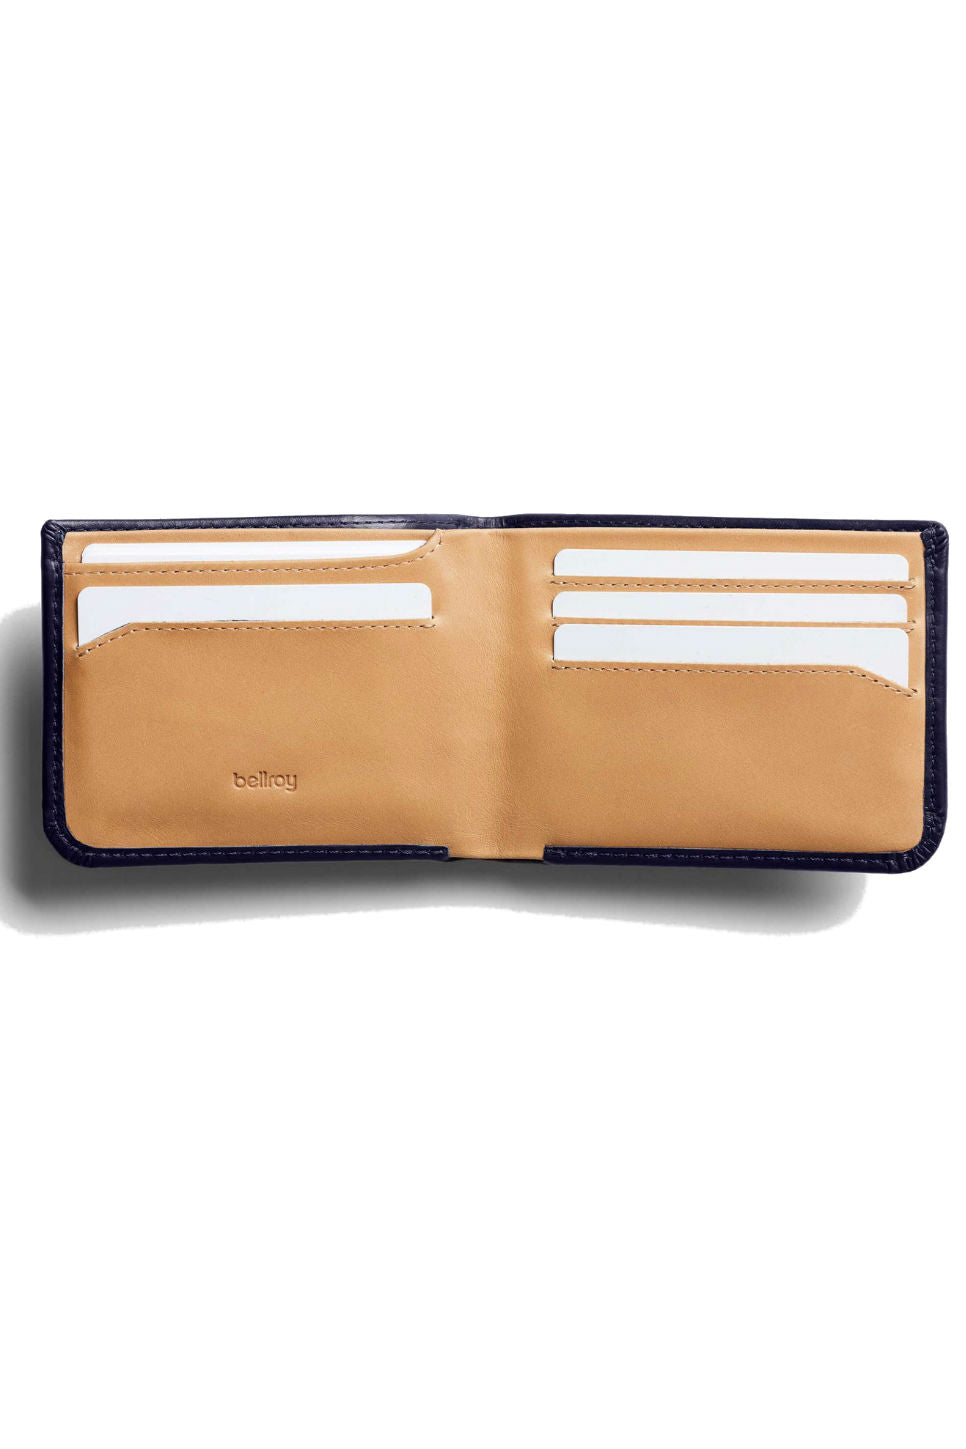 Bellroy - Hide & Seek Wallet - Navy - Inside